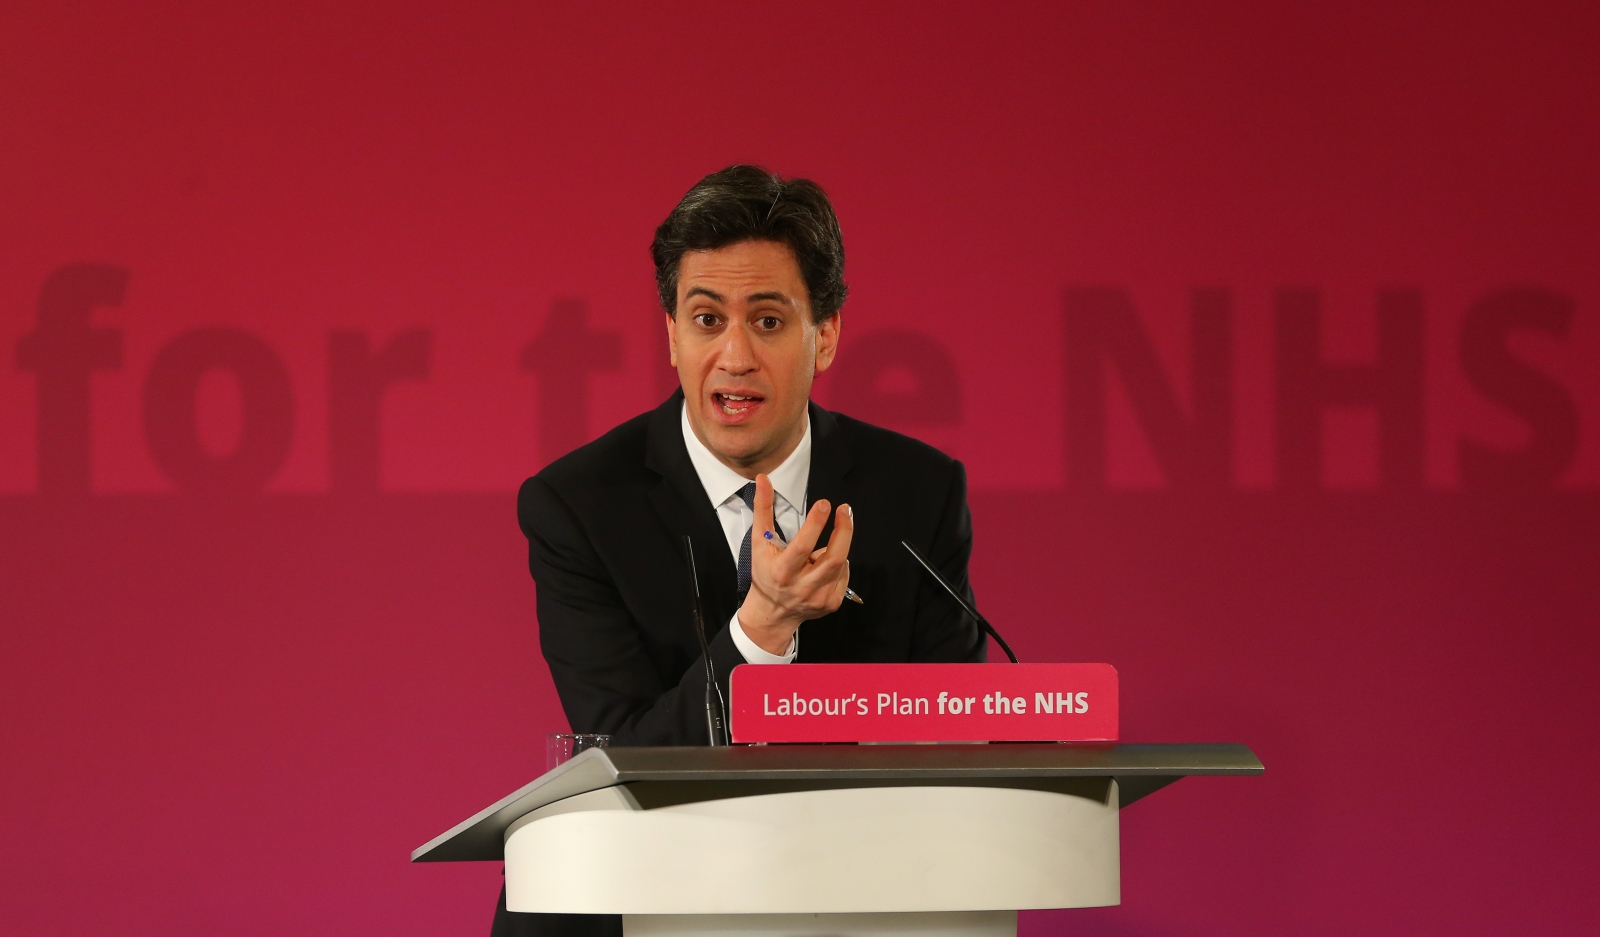 Lord Fink has challenged Ed Miliband to repeat his claims, or to withdraw them publically